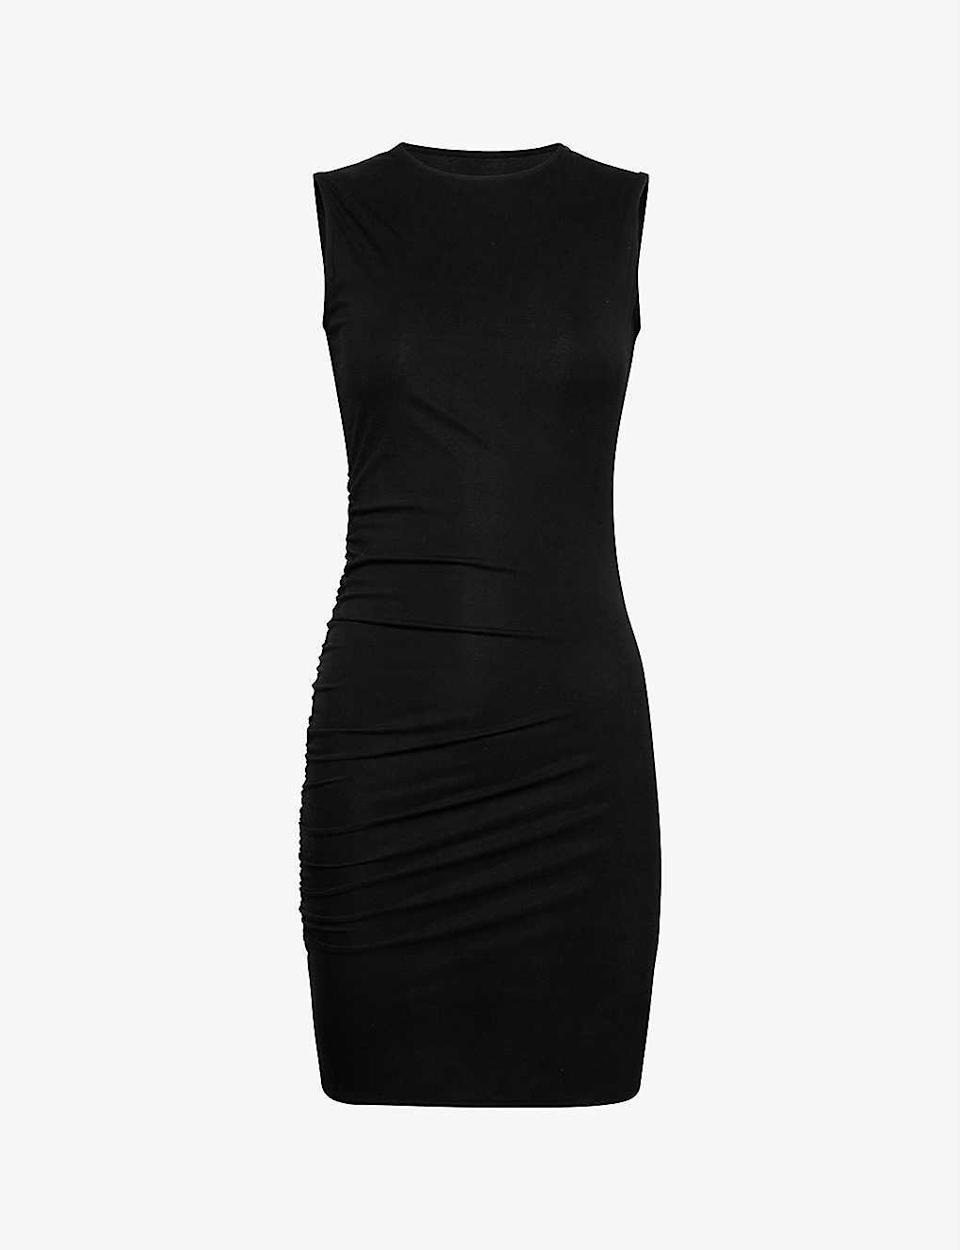 """Is this the LBD to end all LBDs? Quite possibly. Amina Muaddi is a footwear designer and this dress is the result of her collaboration with hosiery staple Wolford. It drapes and ruches in all the right places. If I could justify another LBD, I would buy it. <br><br><strong>AMINA MUADDI X WOLFORD</strong> Draped Stretch-jersey Mini Dress, $, available at <a href=""""https://www.selfridges.com/GB/en/cat/amina-muaddi-x-wolford-draped-stretch-jersey-mini-dress_R03802242/"""" rel=""""nofollow noopener"""" target=""""_blank"""" data-ylk=""""slk:Selfridges"""" class=""""link rapid-noclick-resp"""">Selfridges</a>"""